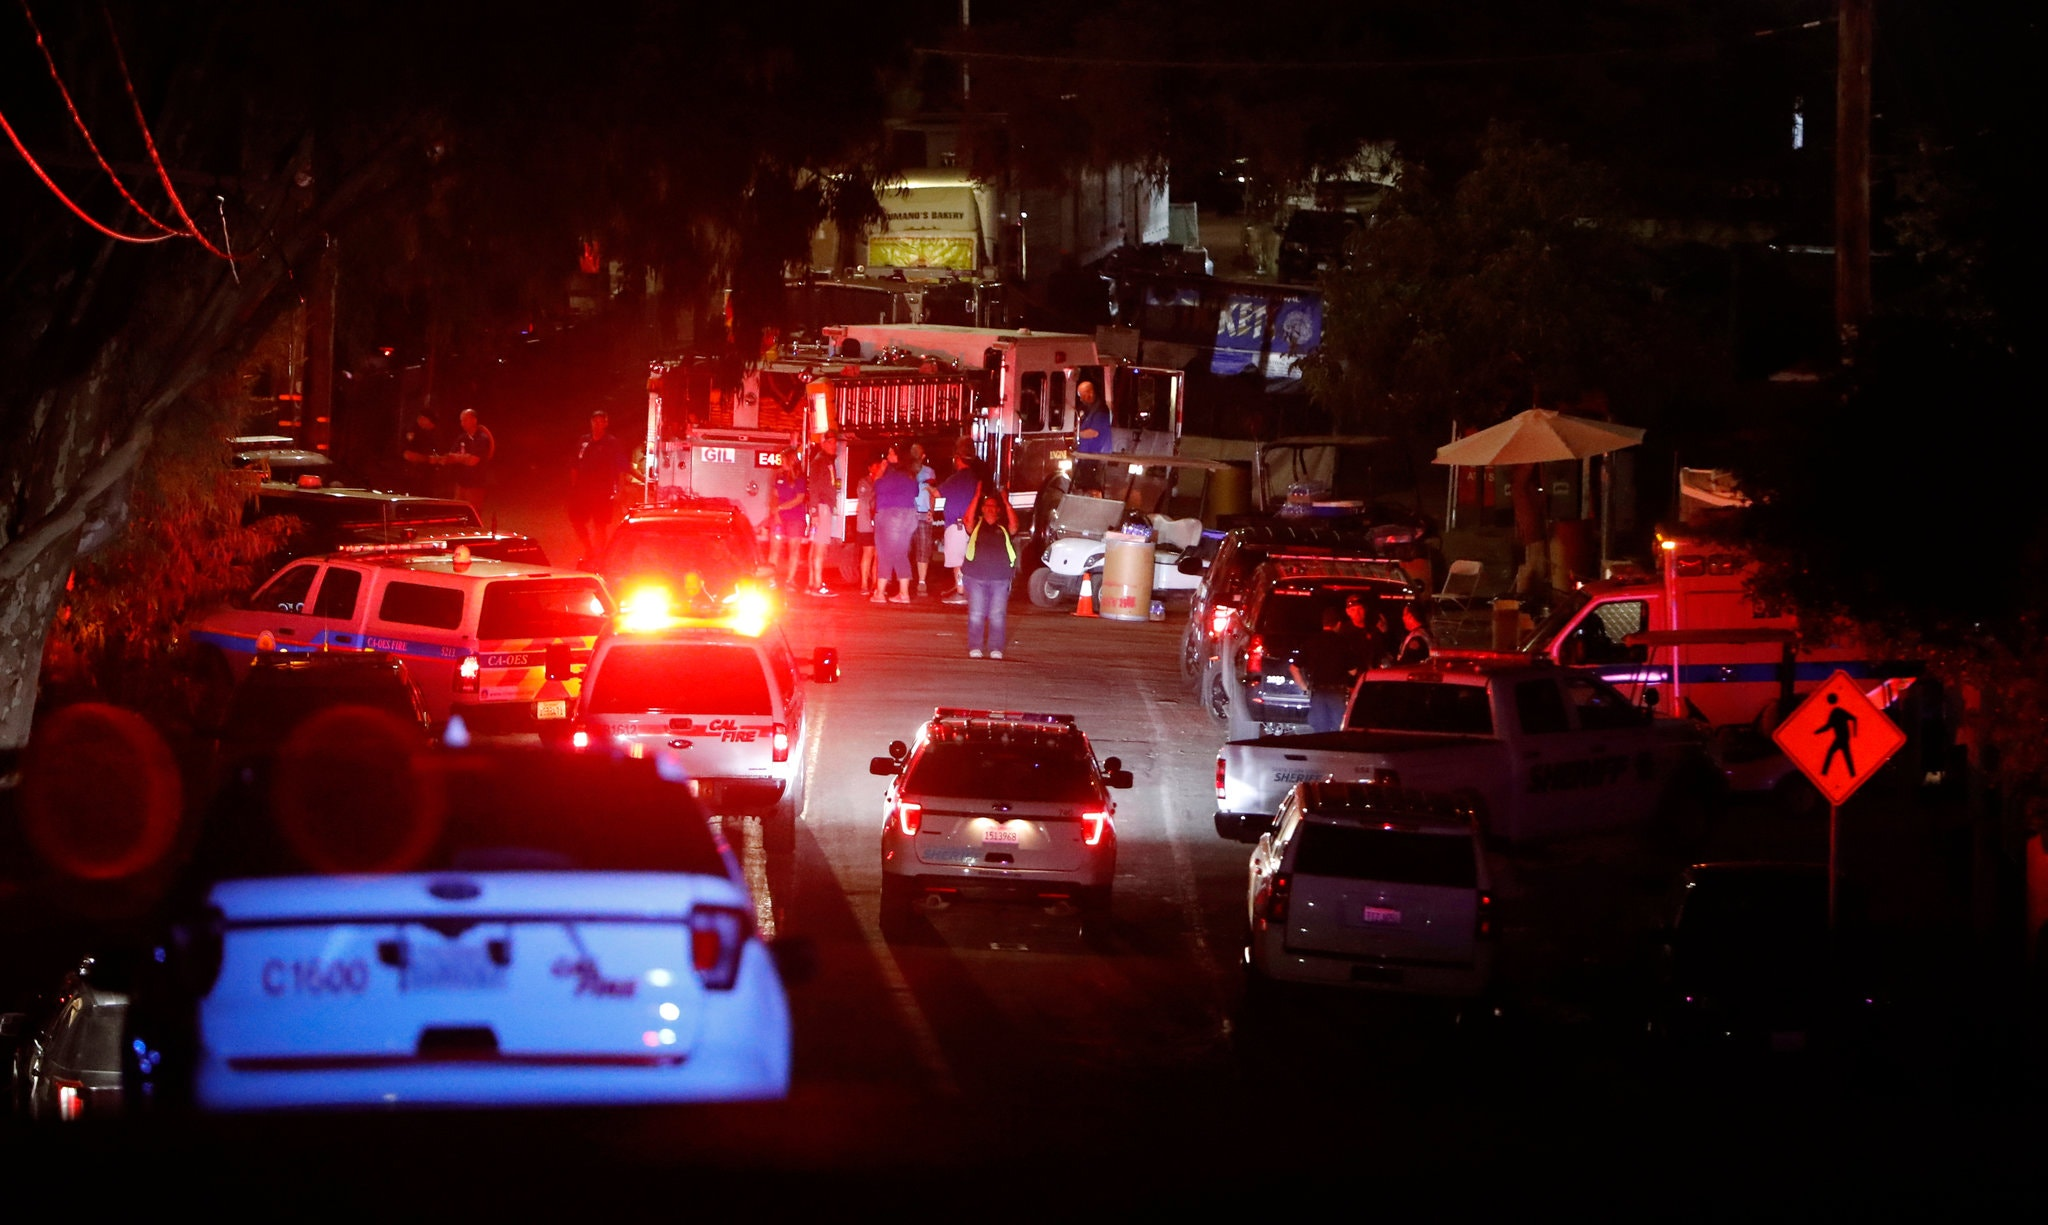 Emergency responders at the scene of a shooting at the Gilroy Garlic Festival in California on Sunday. Credit Nhat V. Meyer/San Jose Mercury News, via Associated Press